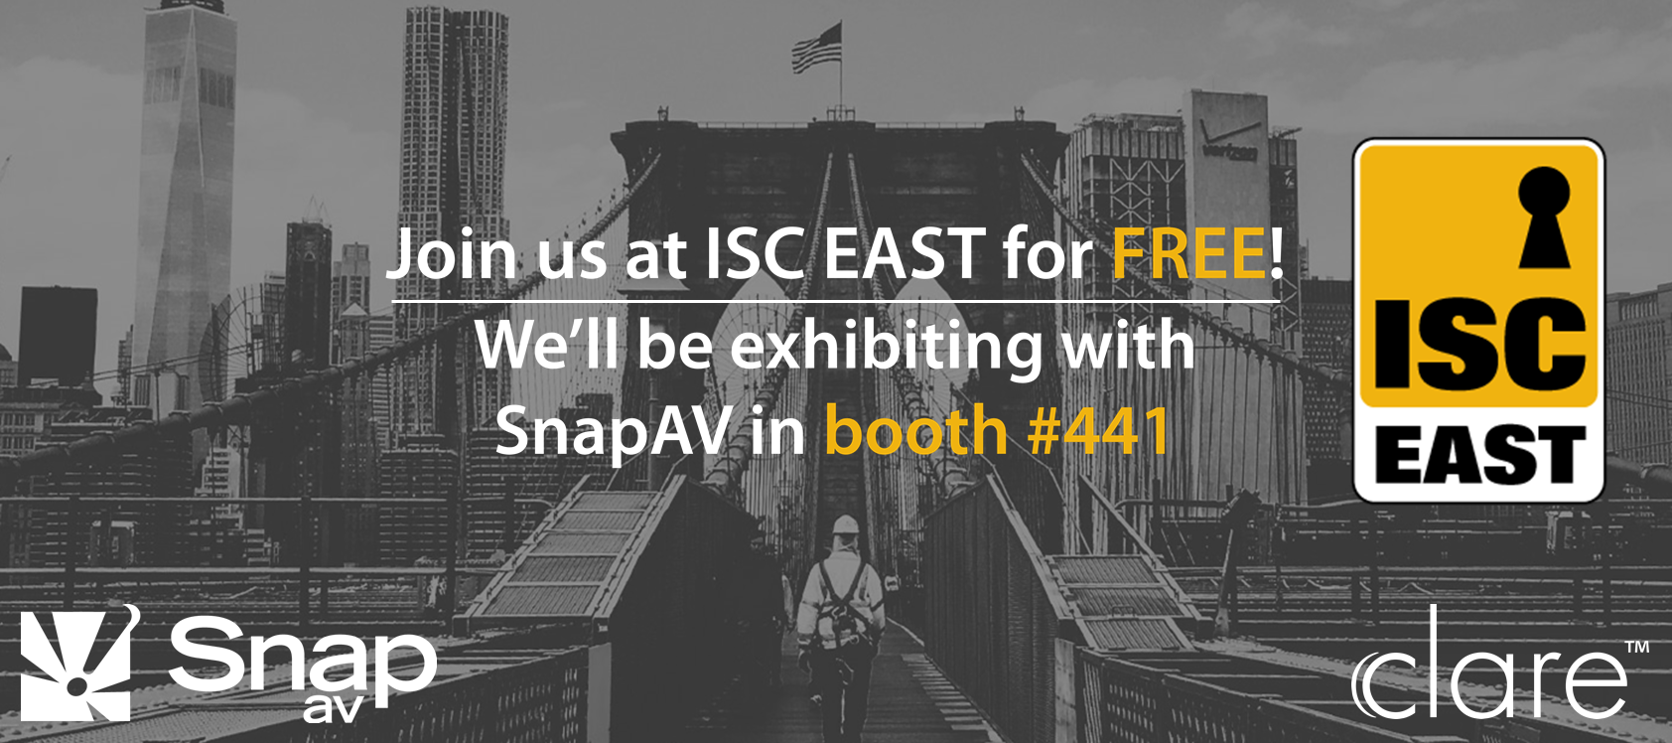 Join us at the ISC East Expo for FREE!